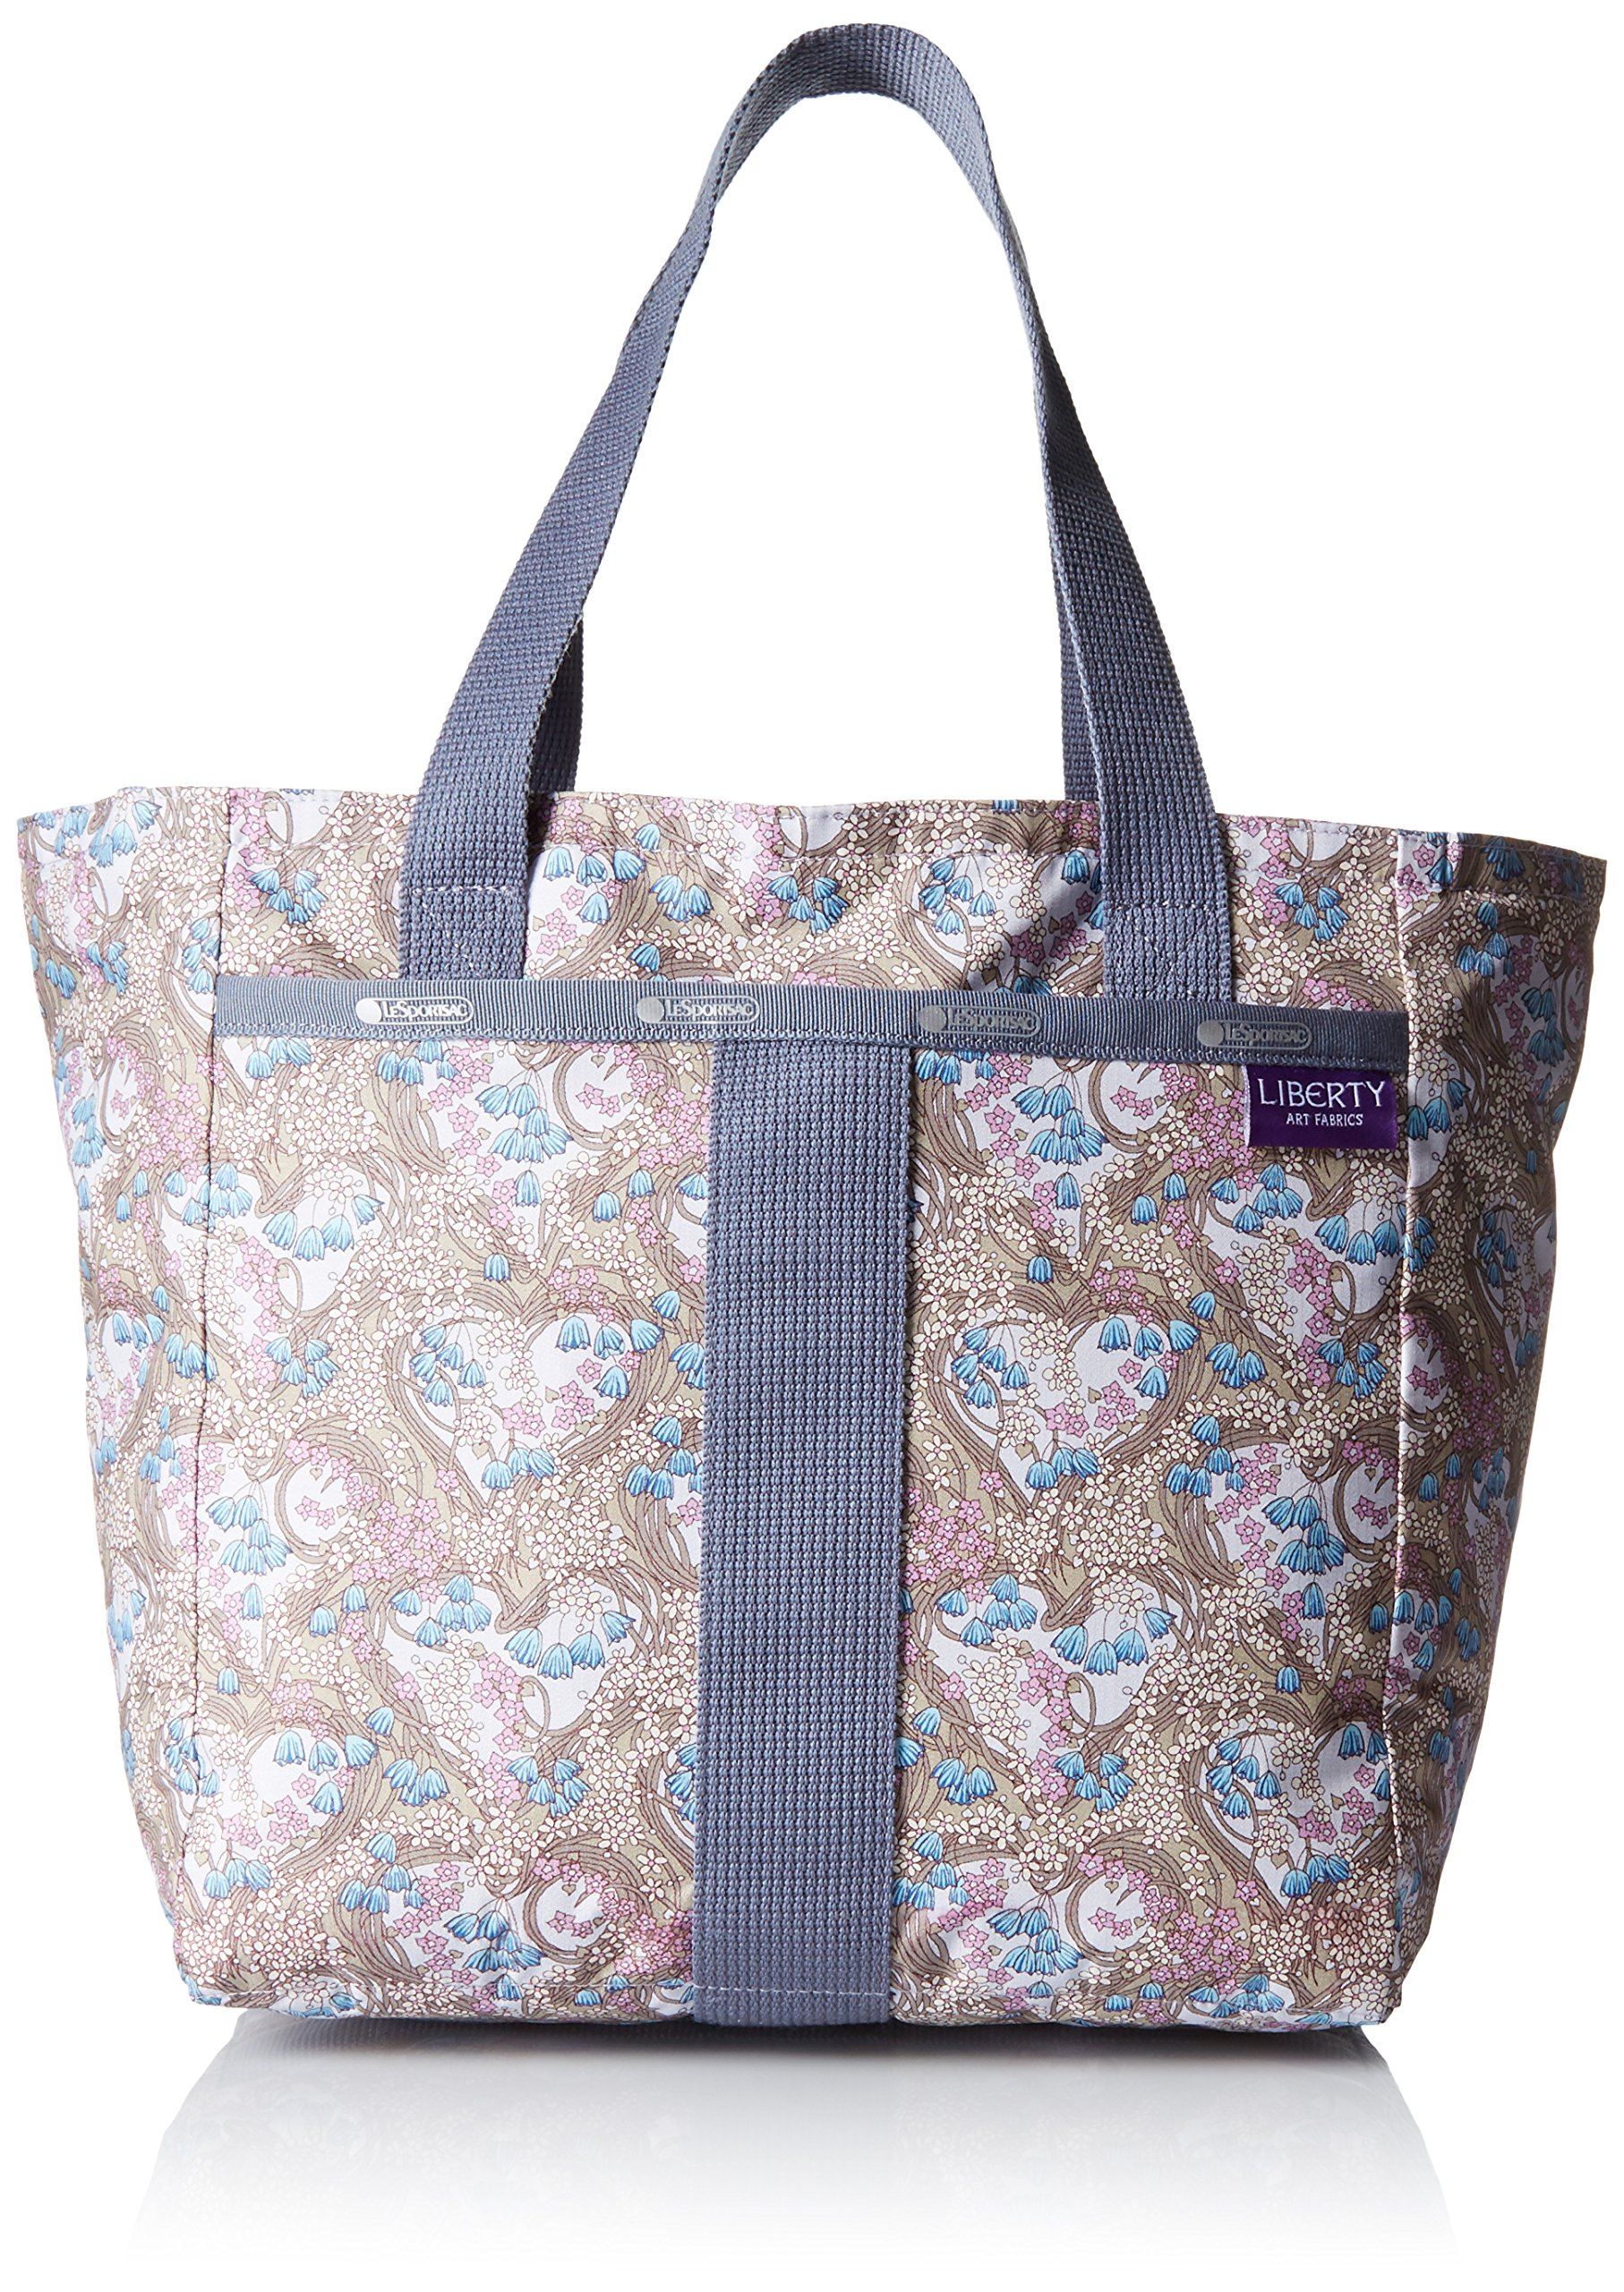 LeSportsac Liberty X Essential Small Everyday Tote, Amy Jane Lilac